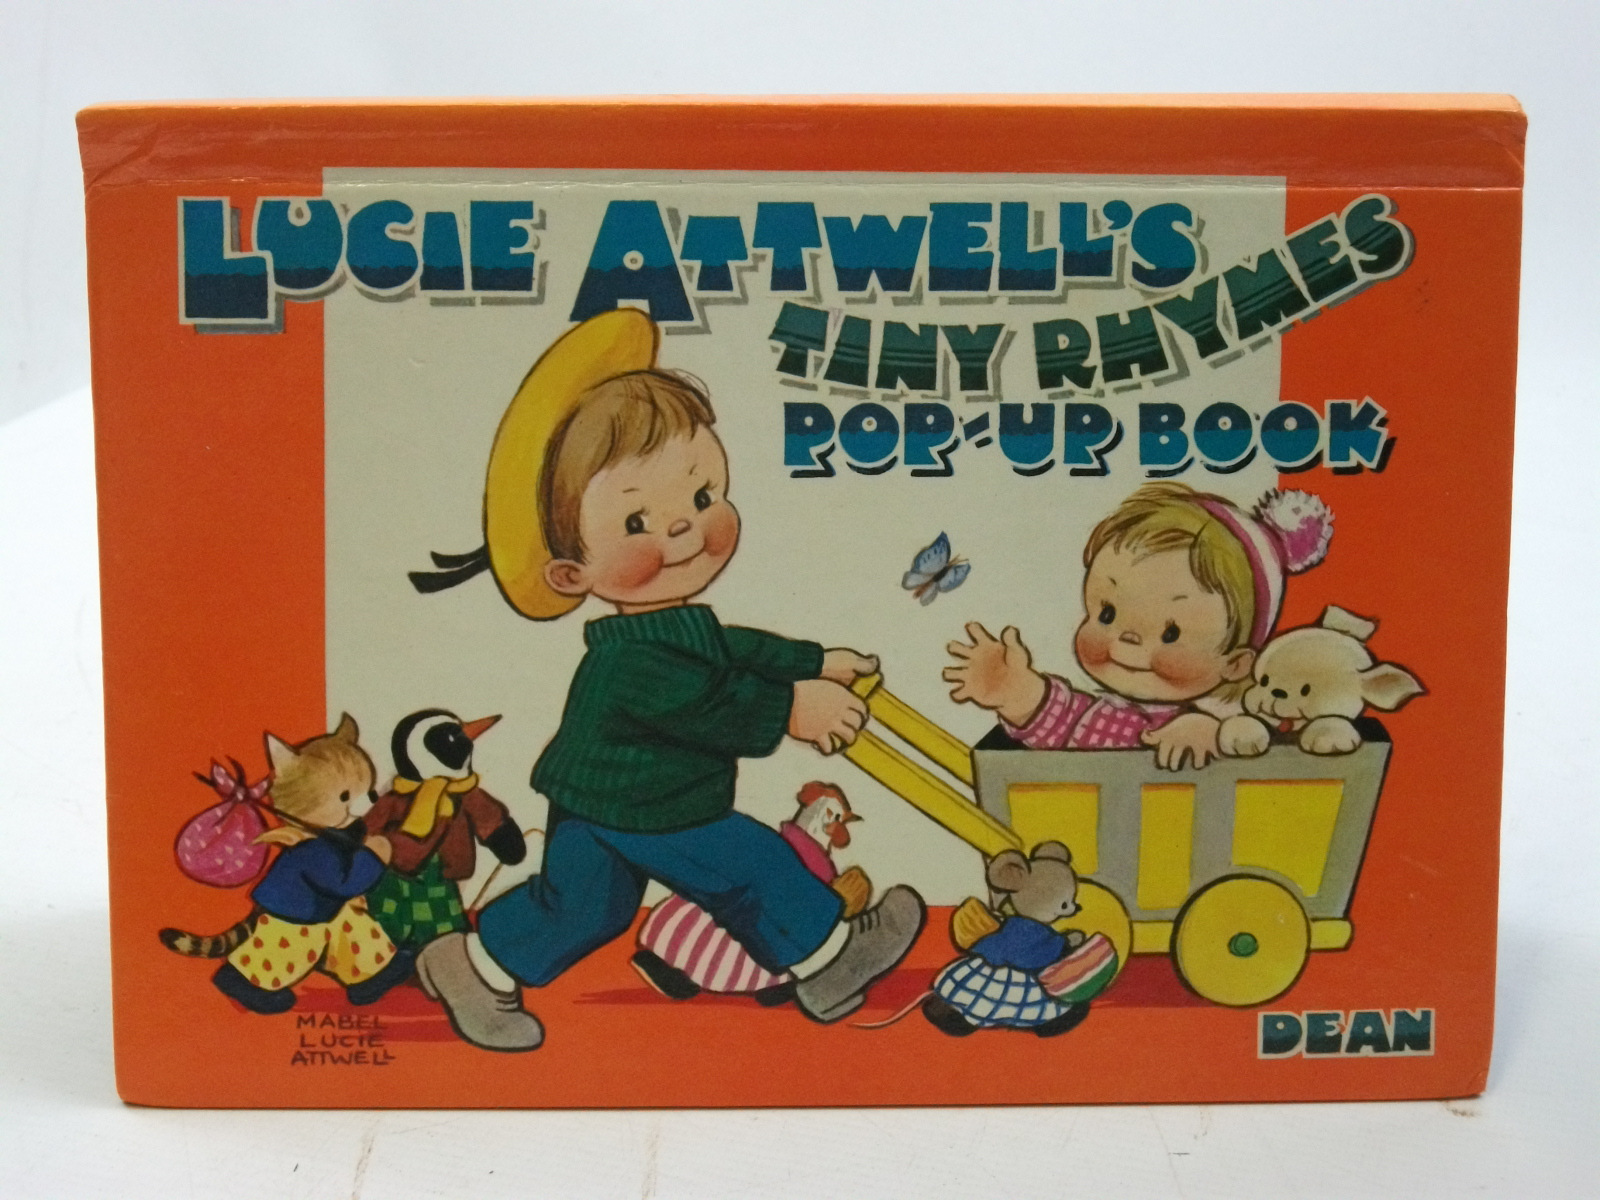 Photo of LUCIE ATTWELL'S TINY RHYMES POP-UP BOOK illustrated by Attwell, Mabel Lucie published by Dean & Son Ltd. (STOCK CODE: 2109984)  for sale by Stella & Rose's Books